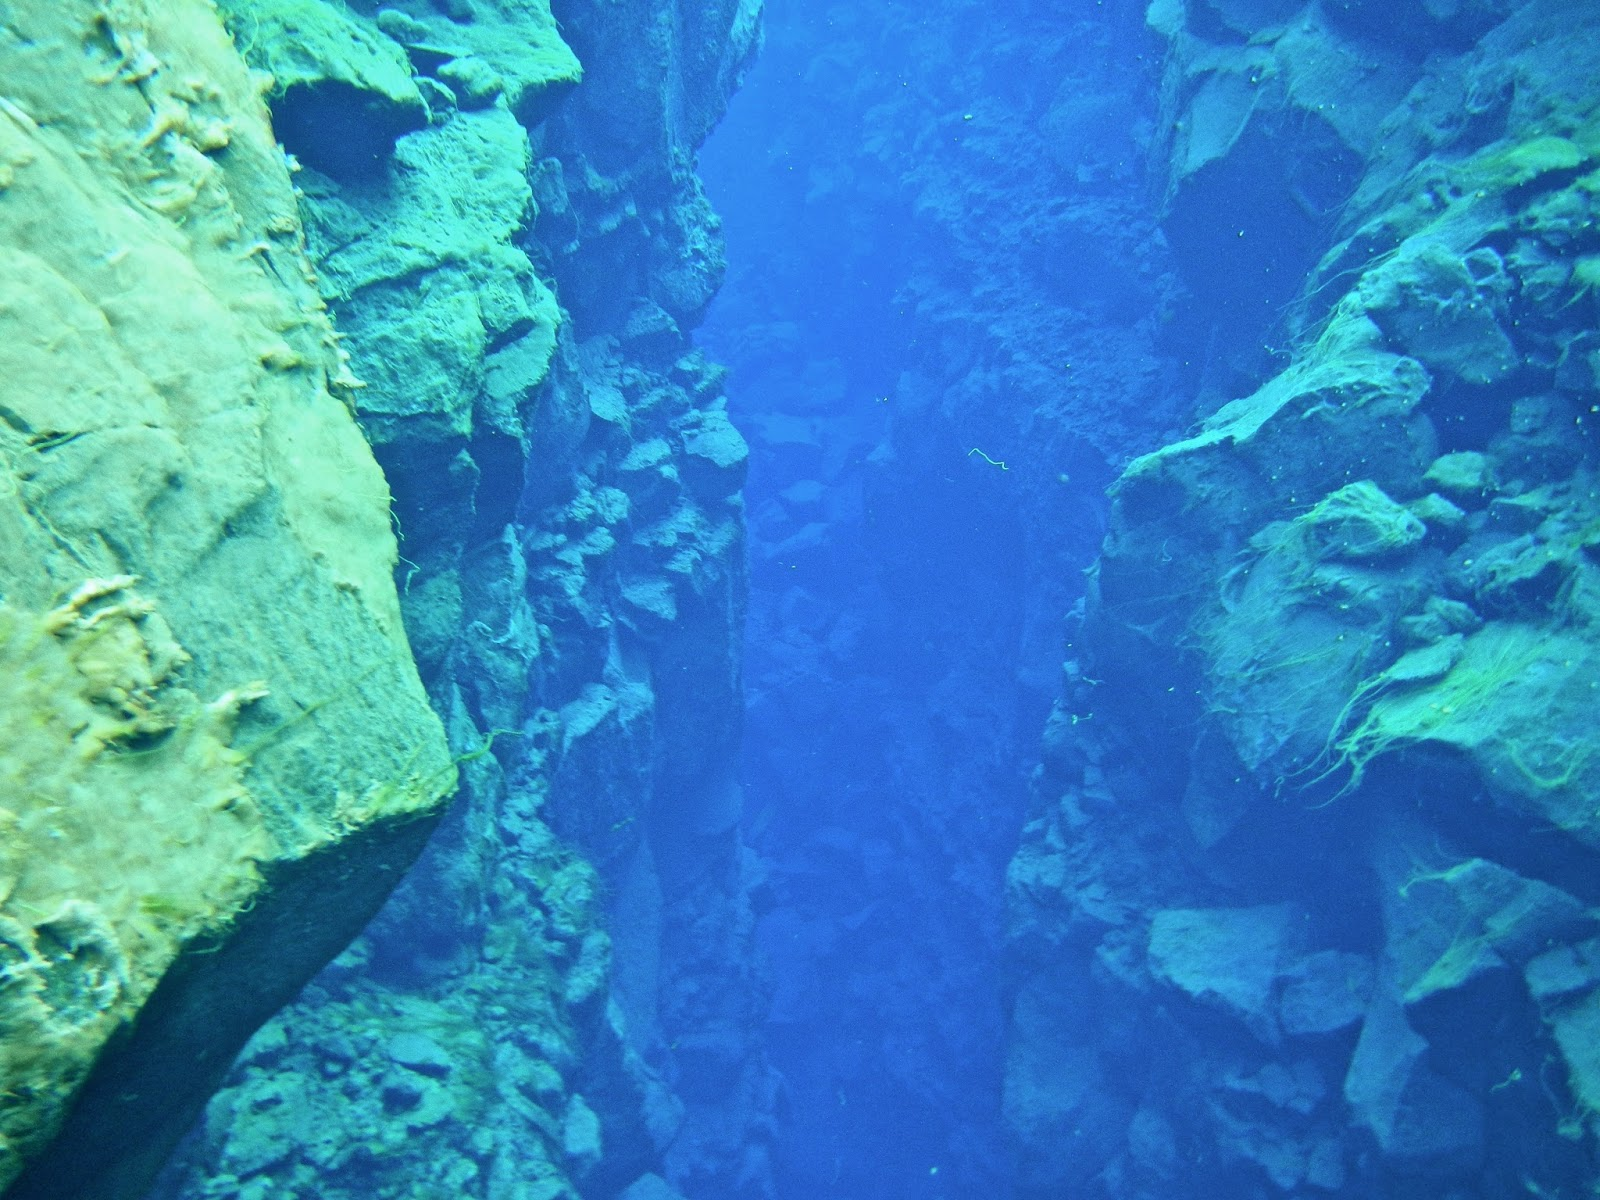 Things to do in Reykjavik Iceland : Snorkel between the Eurasian and American tectonic plates in the Silfra Fissure